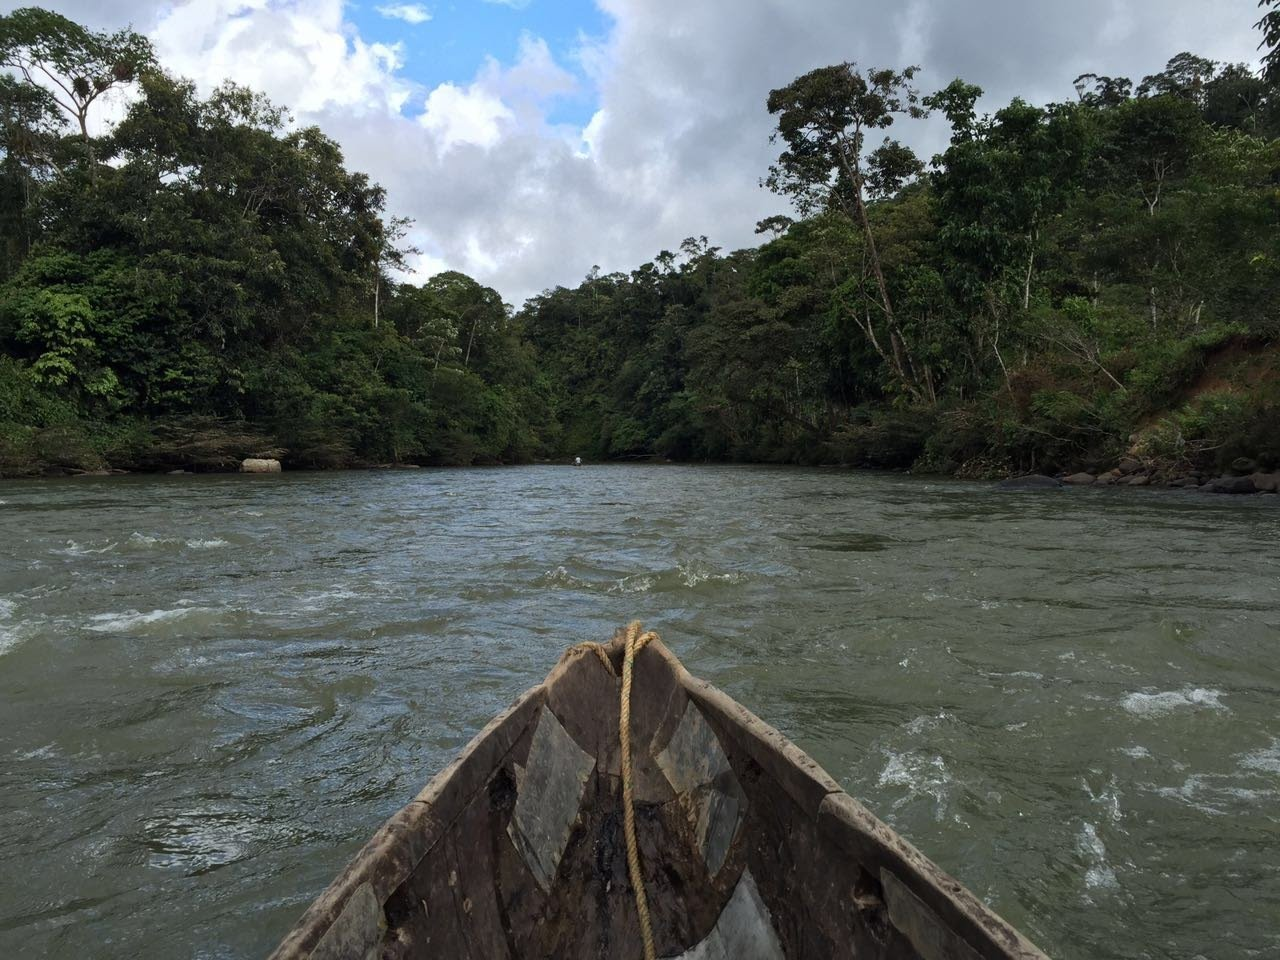 If you're planning a trip to Ecuador, here are 6 things to know about Ecuador before visiting. This guide will help you make the most of your vacation!